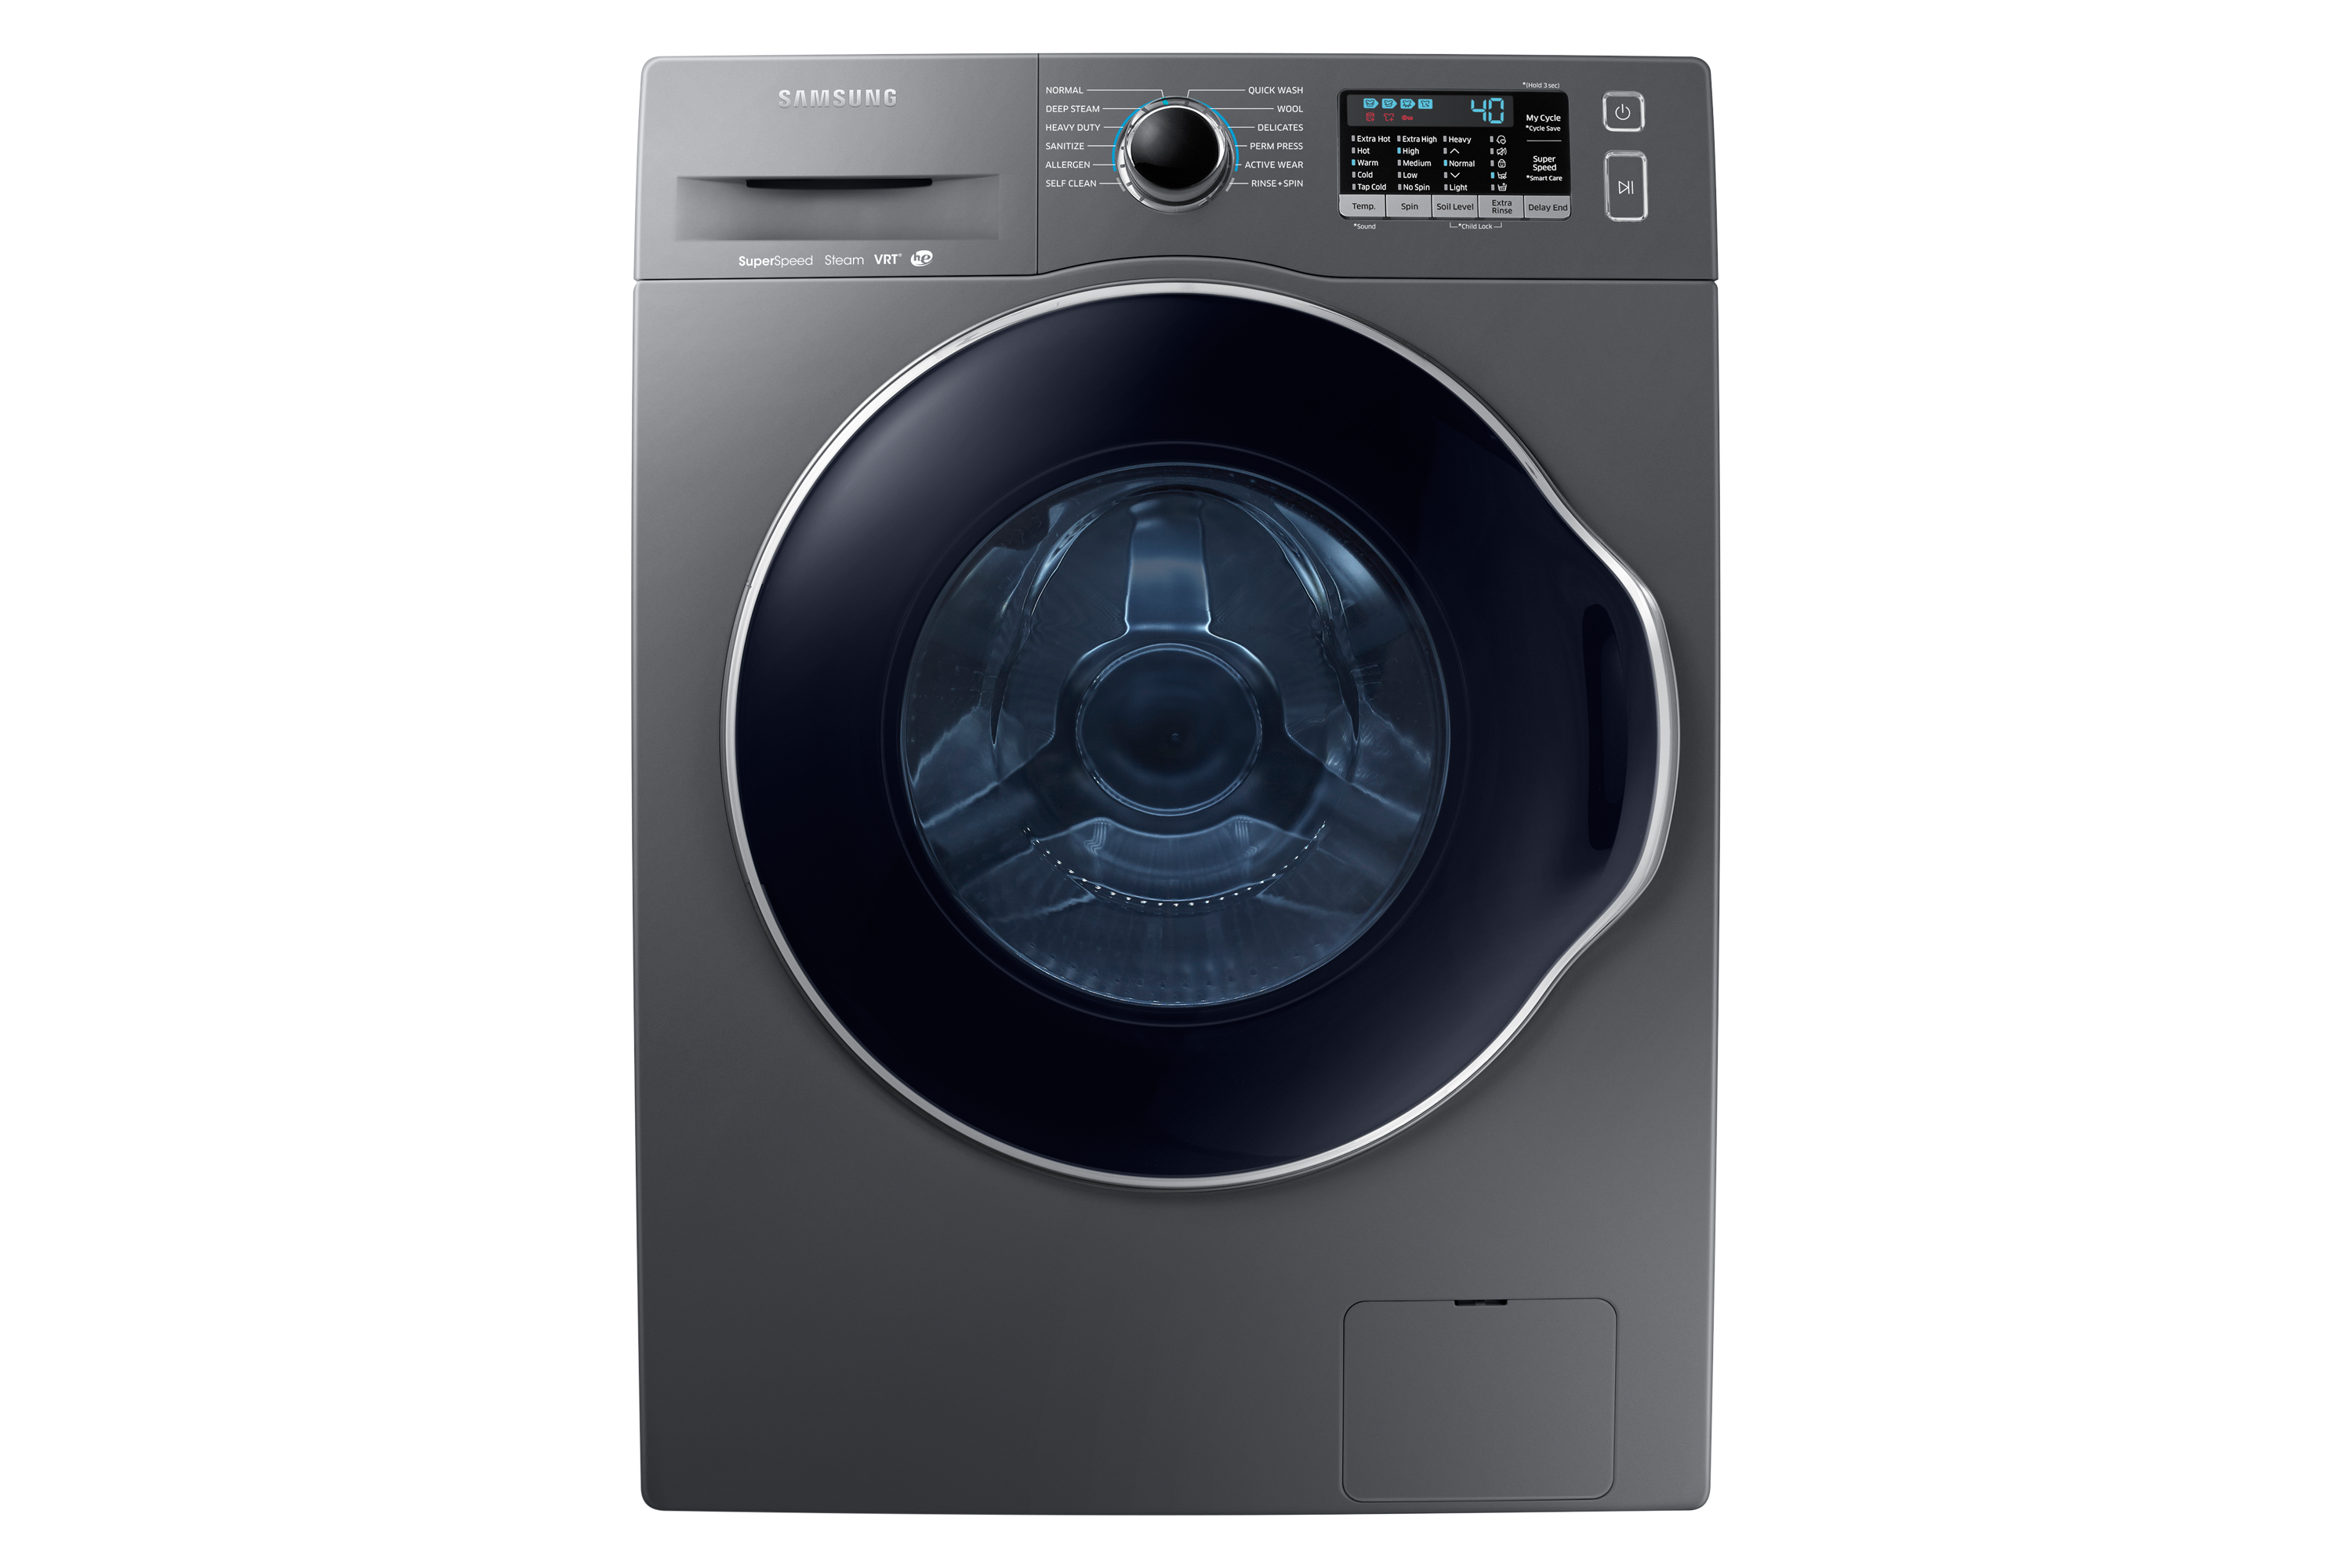 Samsung Ww6800 2 Cu Ft 24 Front Load Washer With Super